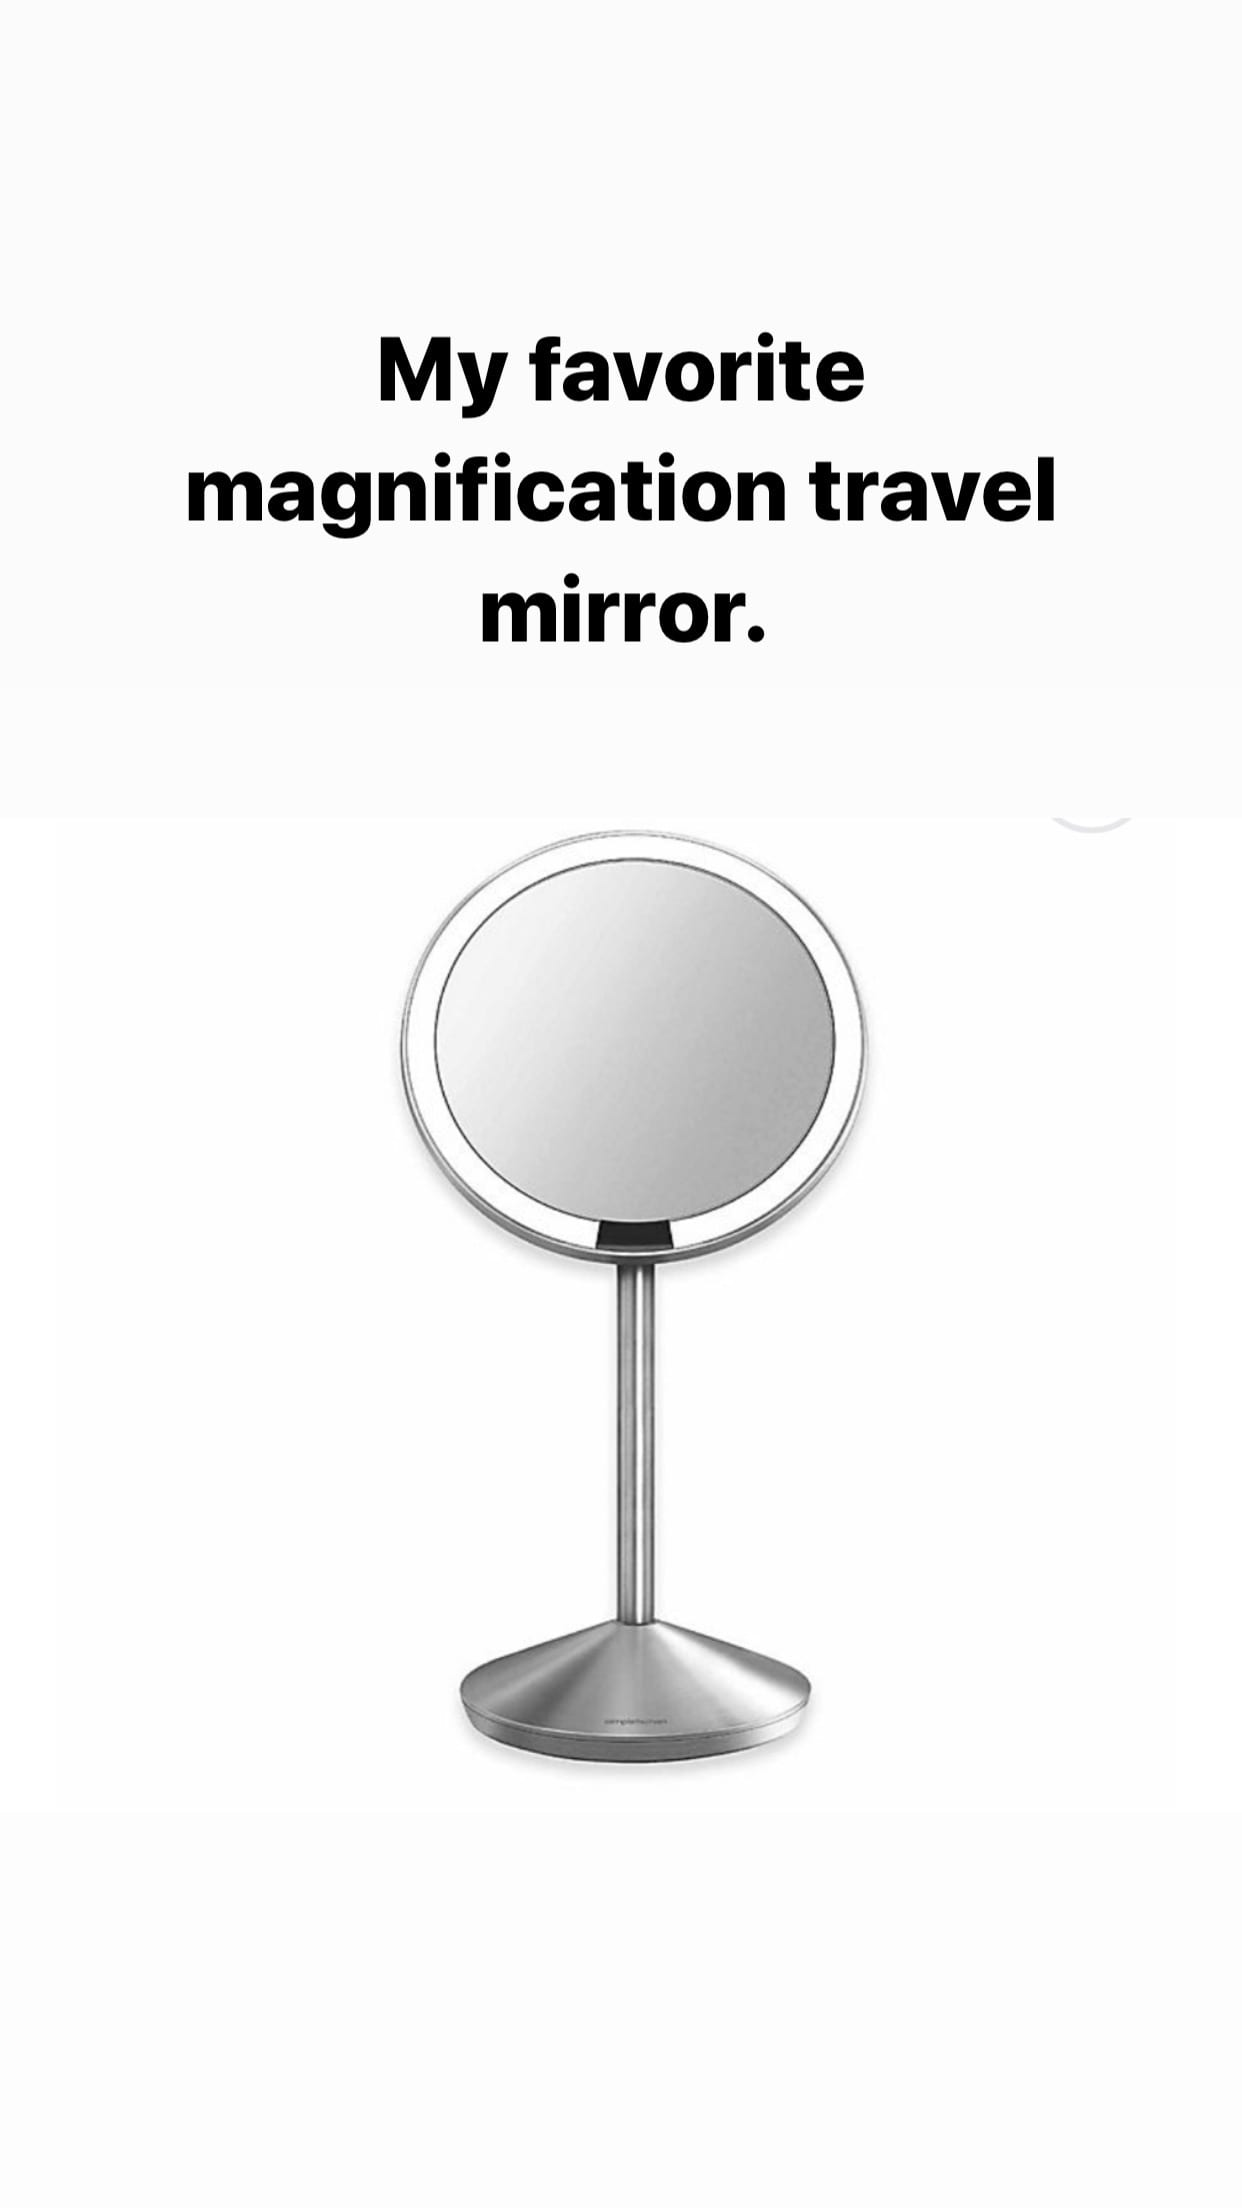 travel mirror